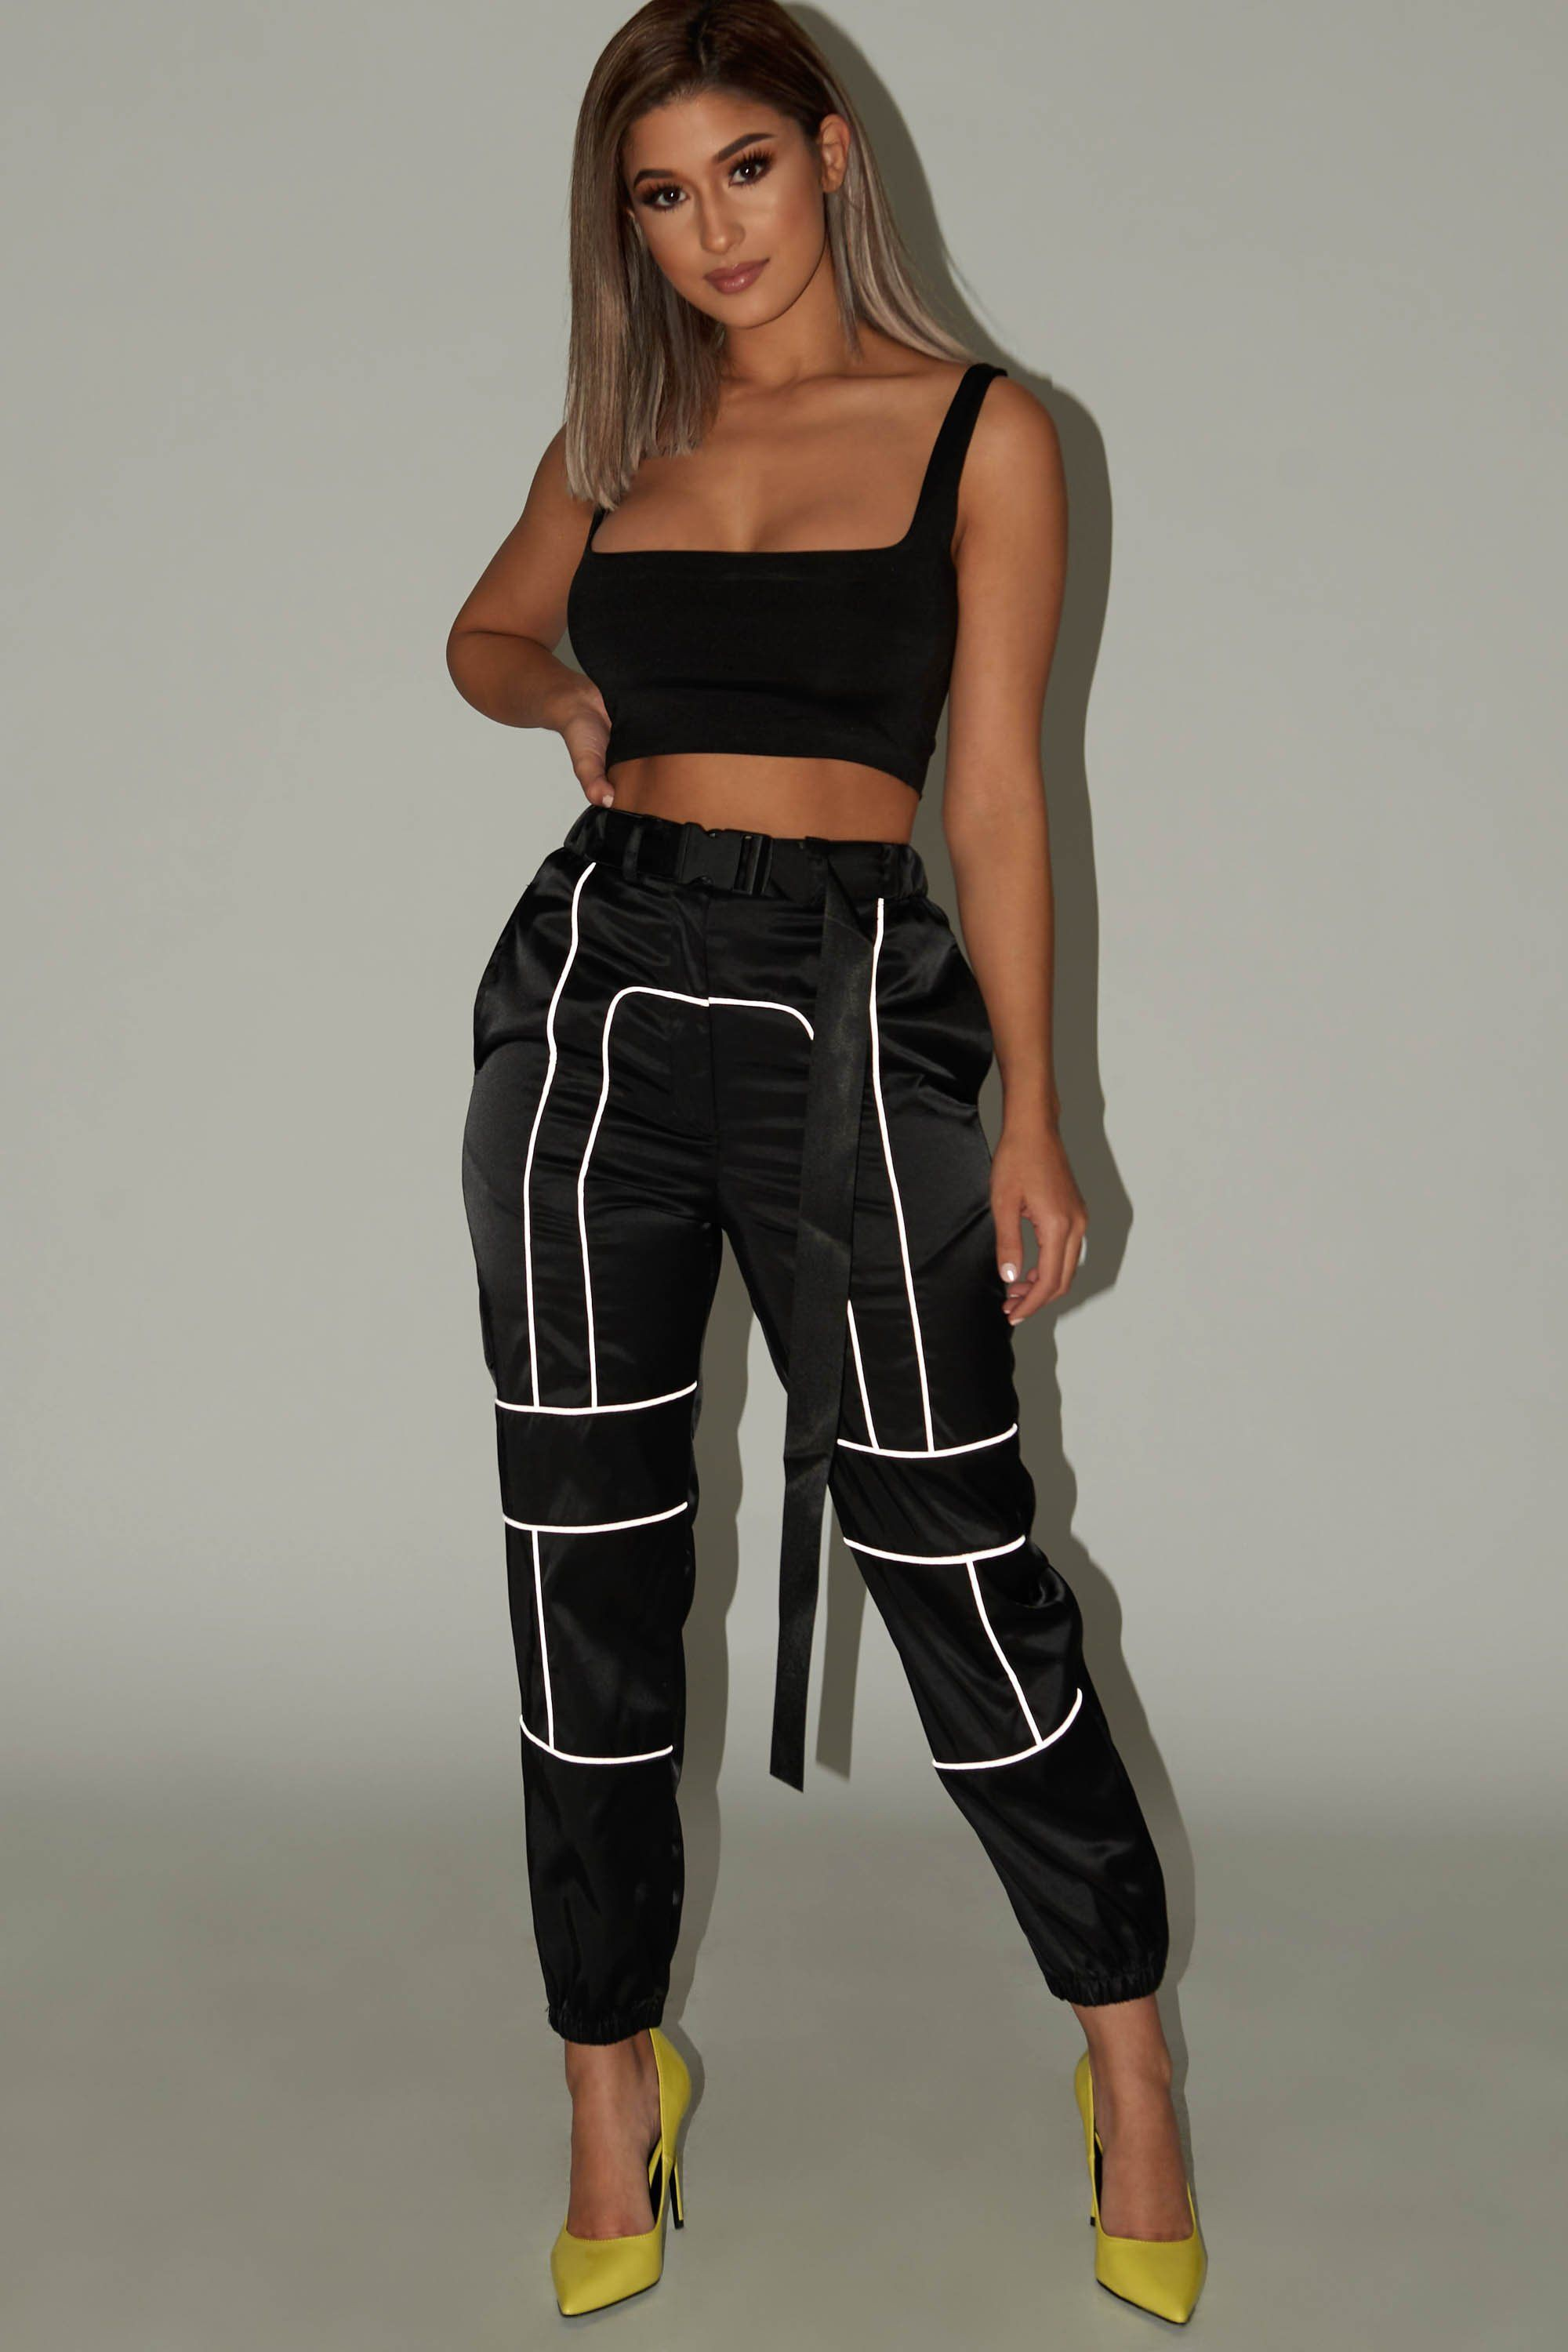 Reflective pants outfit ideas, cargo pants